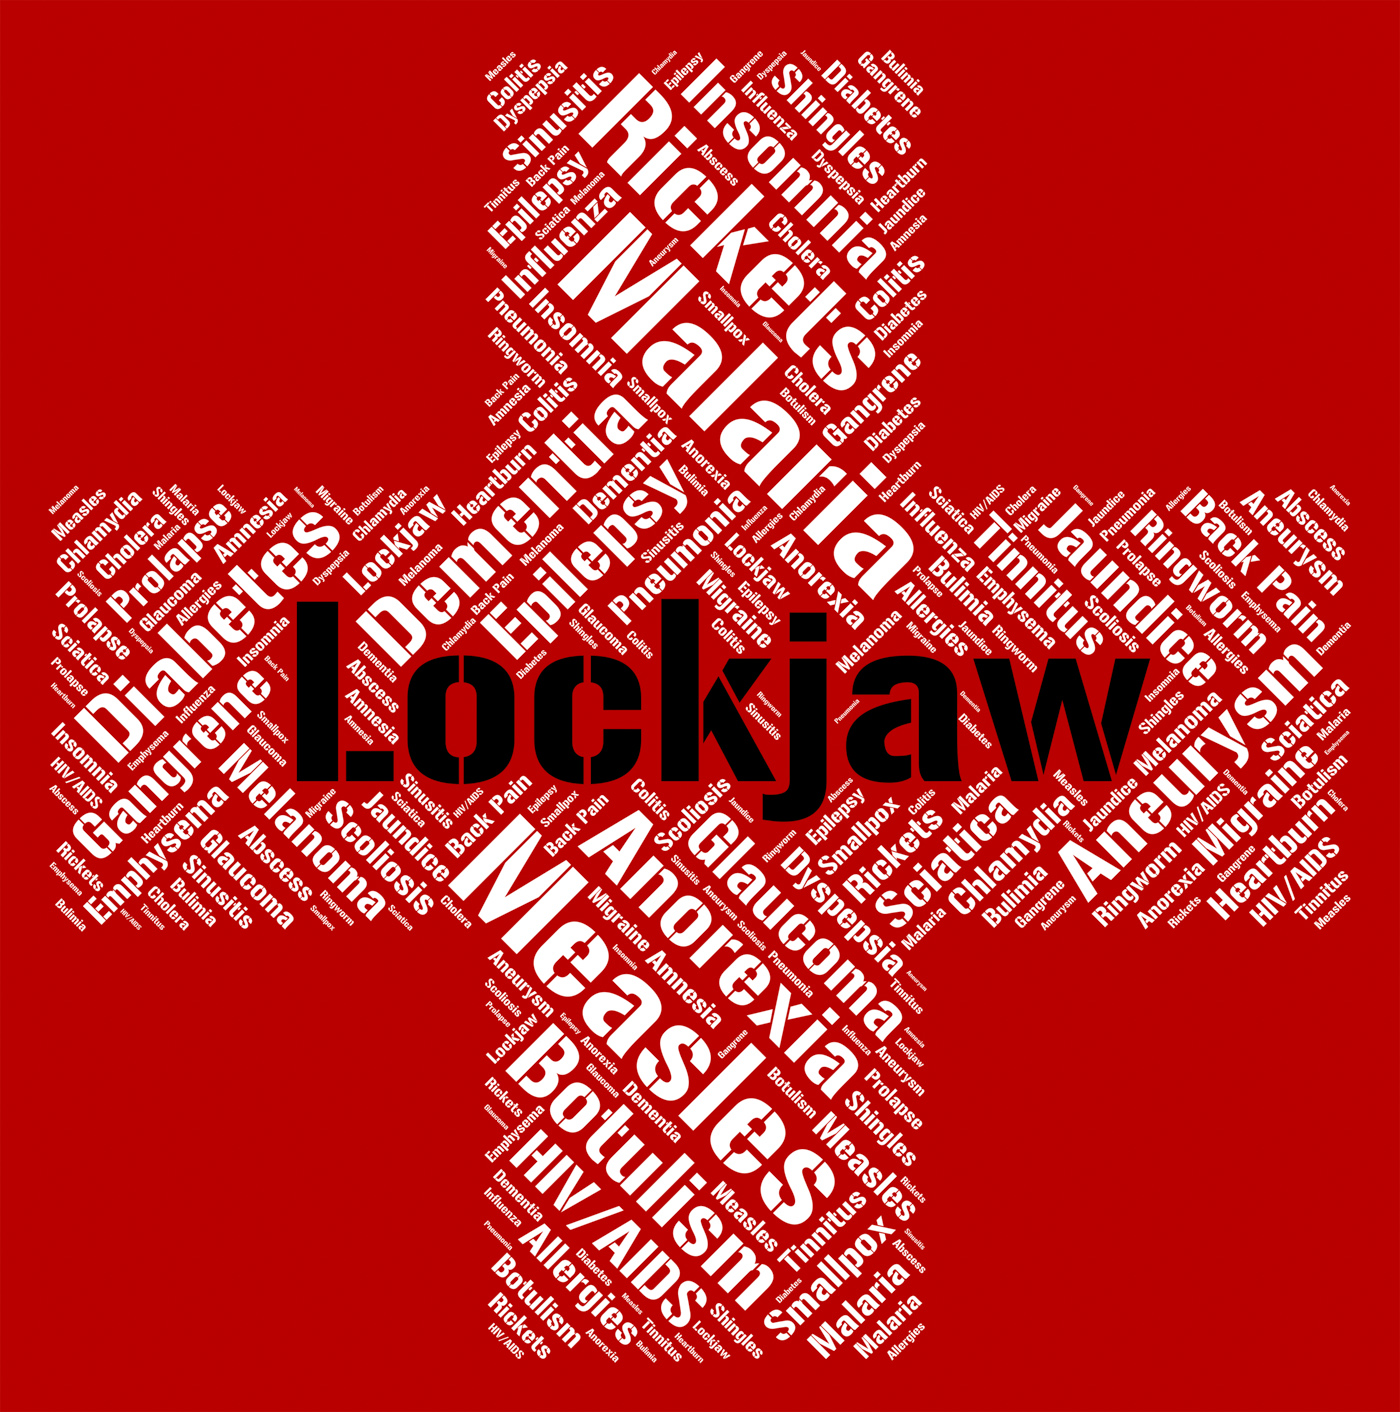 Lockjaw word shows poor health and affliction photo